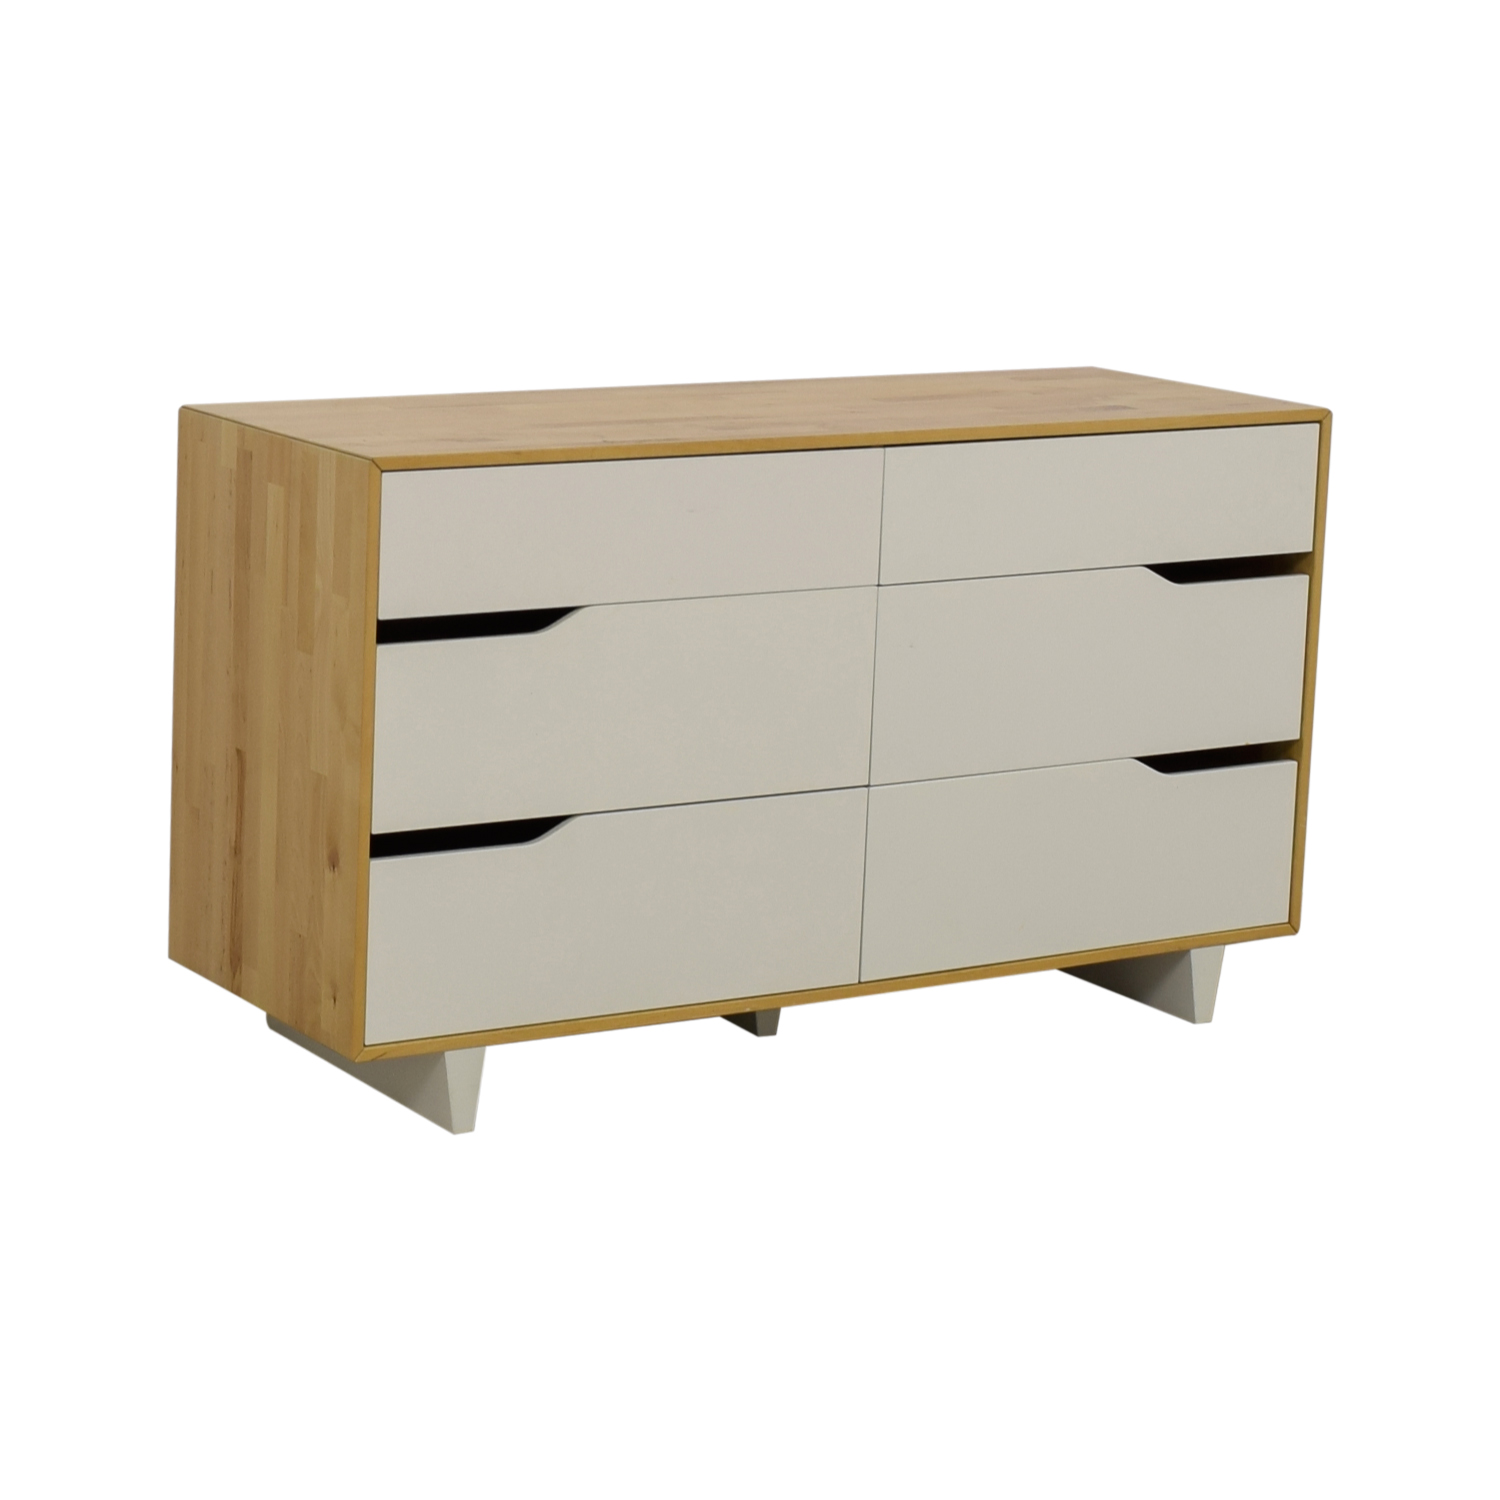 51 Off Ikea Mandal White And Natural Six Drawer Dresser Storage